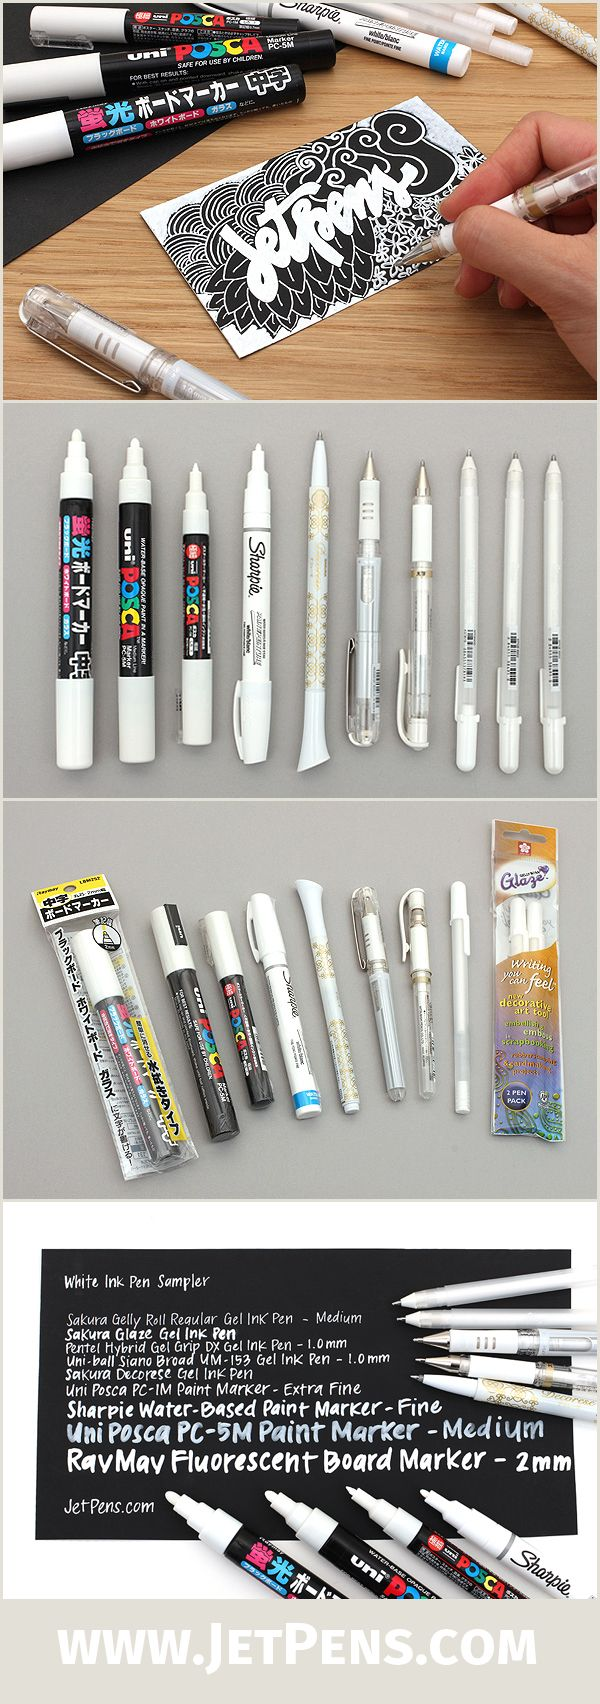 Color drawing pens for artists - Best 25 Marker Pen Ideas On Pinterest Brush Pen Copic Marker Set And Watercolor Brush Pen